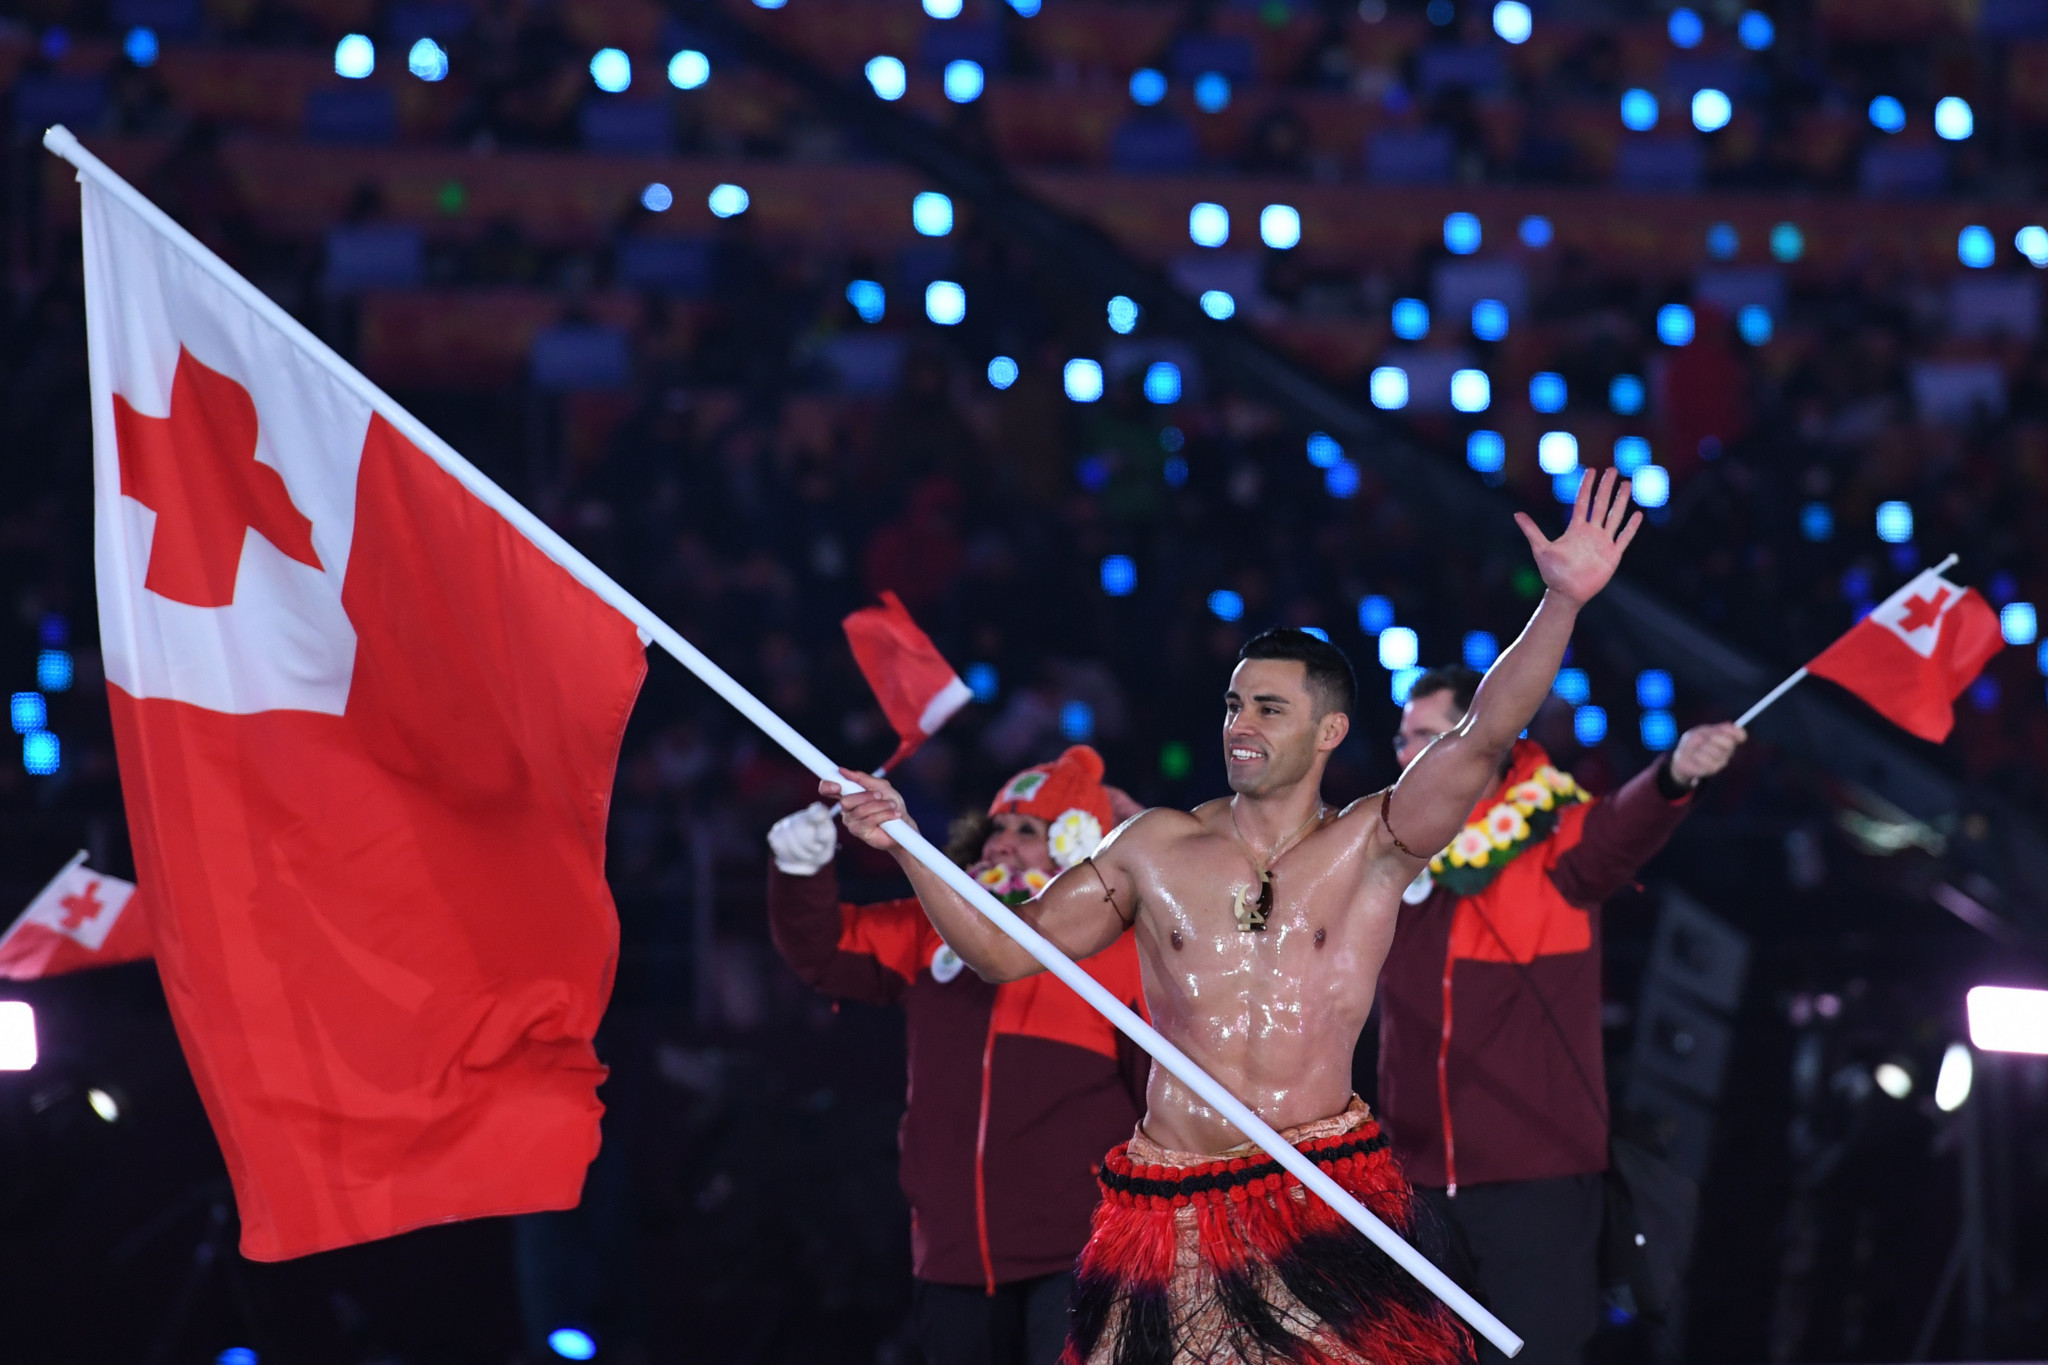 Tongan flagbearer Pita Taufatofua marching topless for the second consecutive Olympic Games Opening Ceremony provided a light-hearted moment ©Getty Images